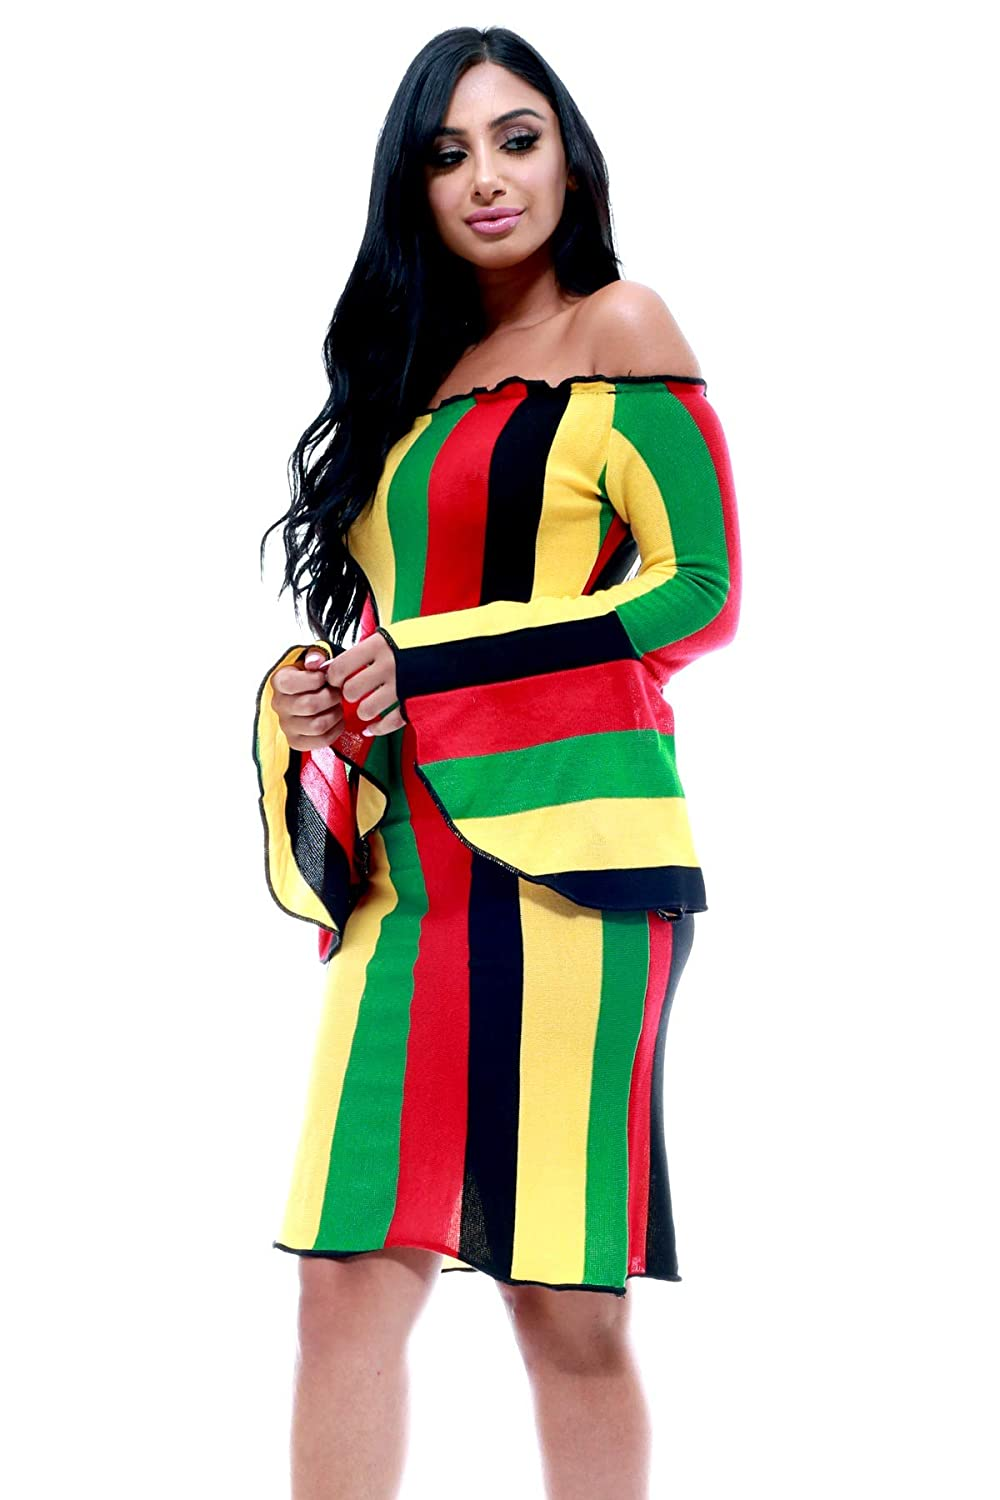 f4339229677 Fifth Degree Reggae Jamaican Off Shoulder Bell Sleeve Club Rasta Dress (S)  at Amazon Women s Clothing store